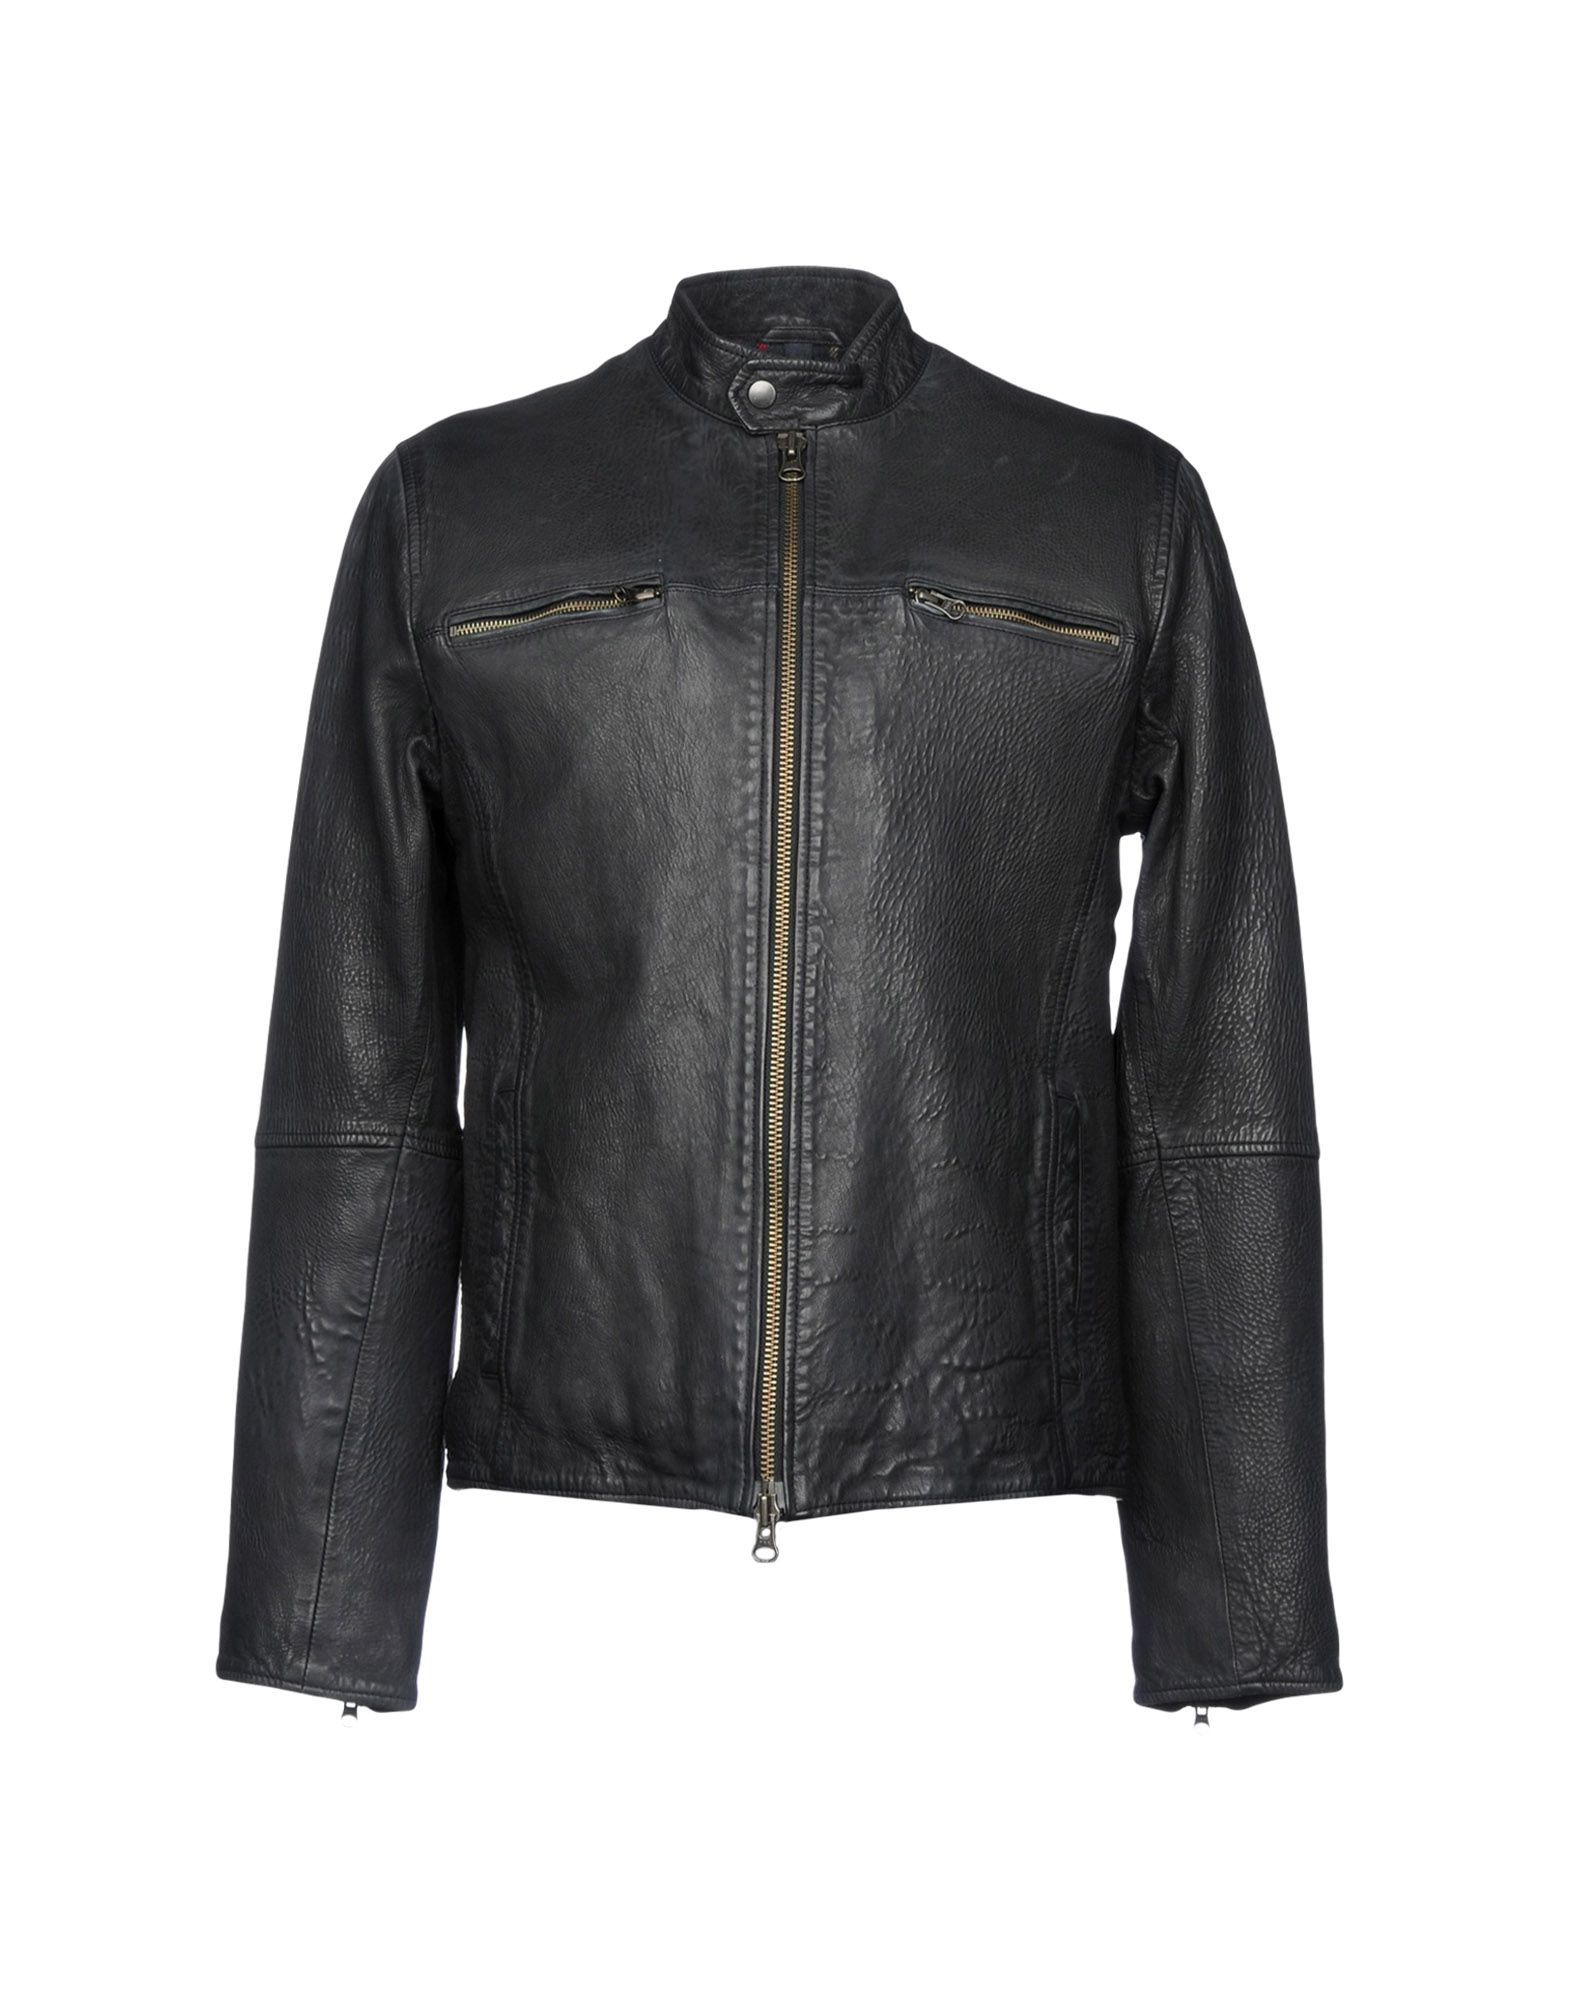 D'AMICO Jackets in Black